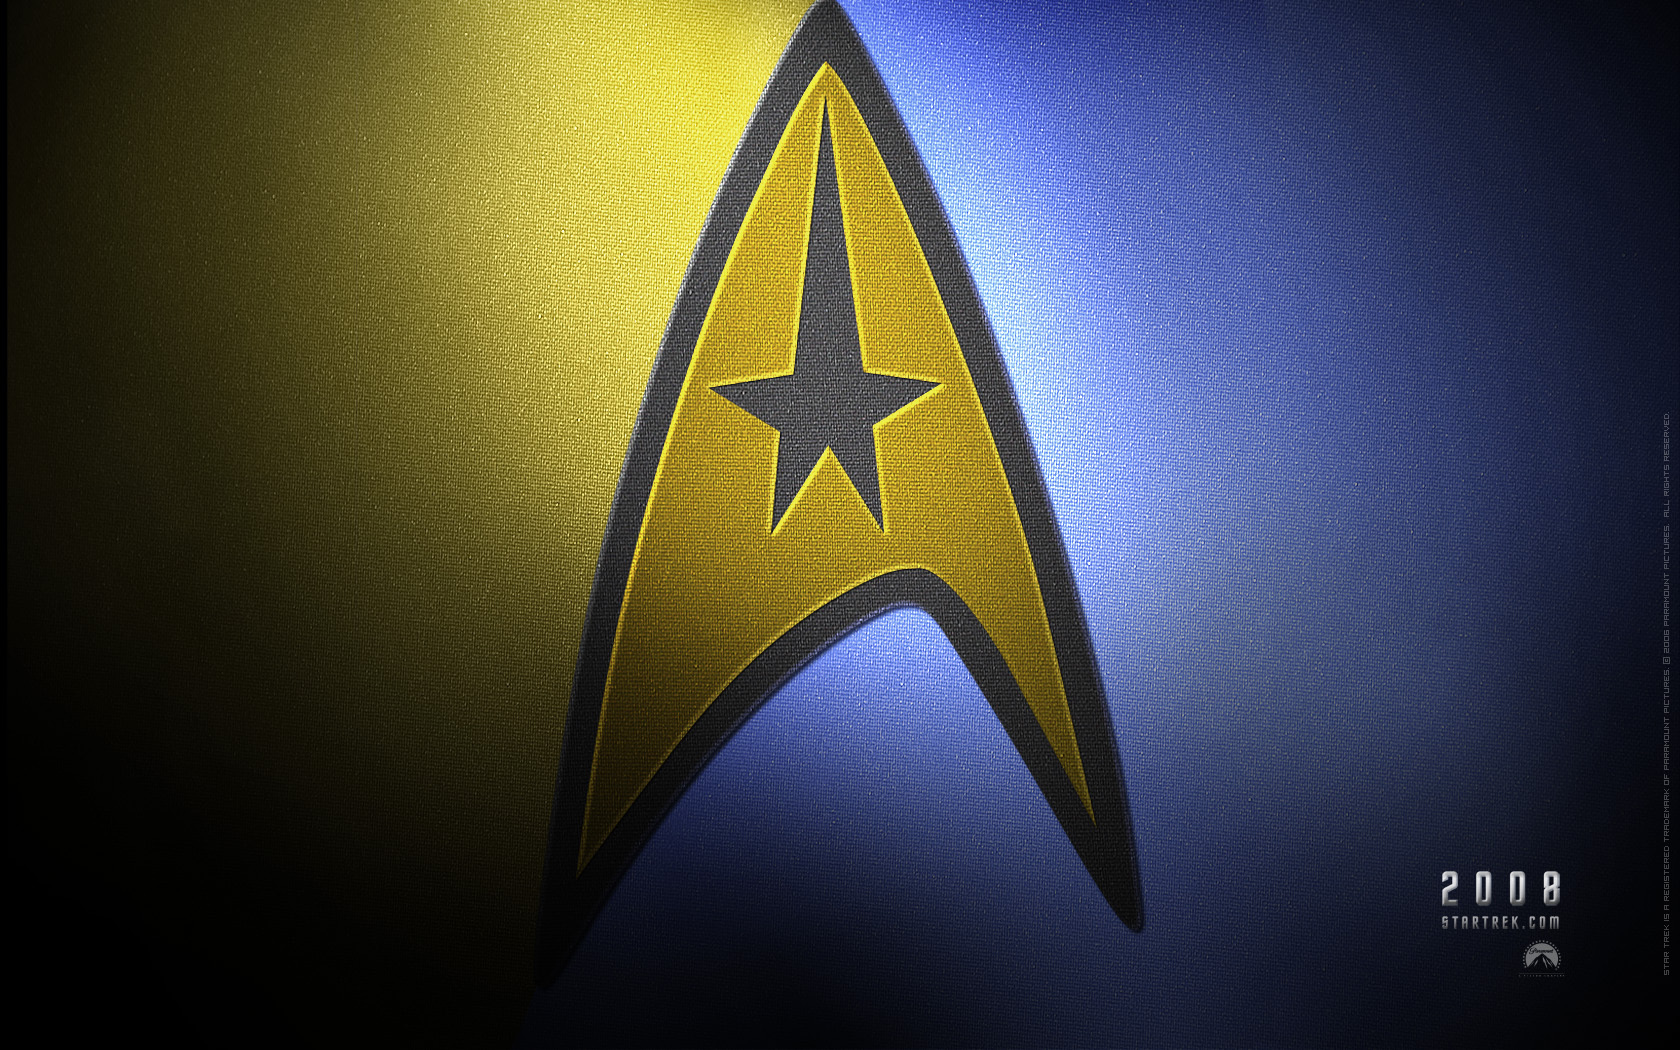 Star trek insignia wallpaper